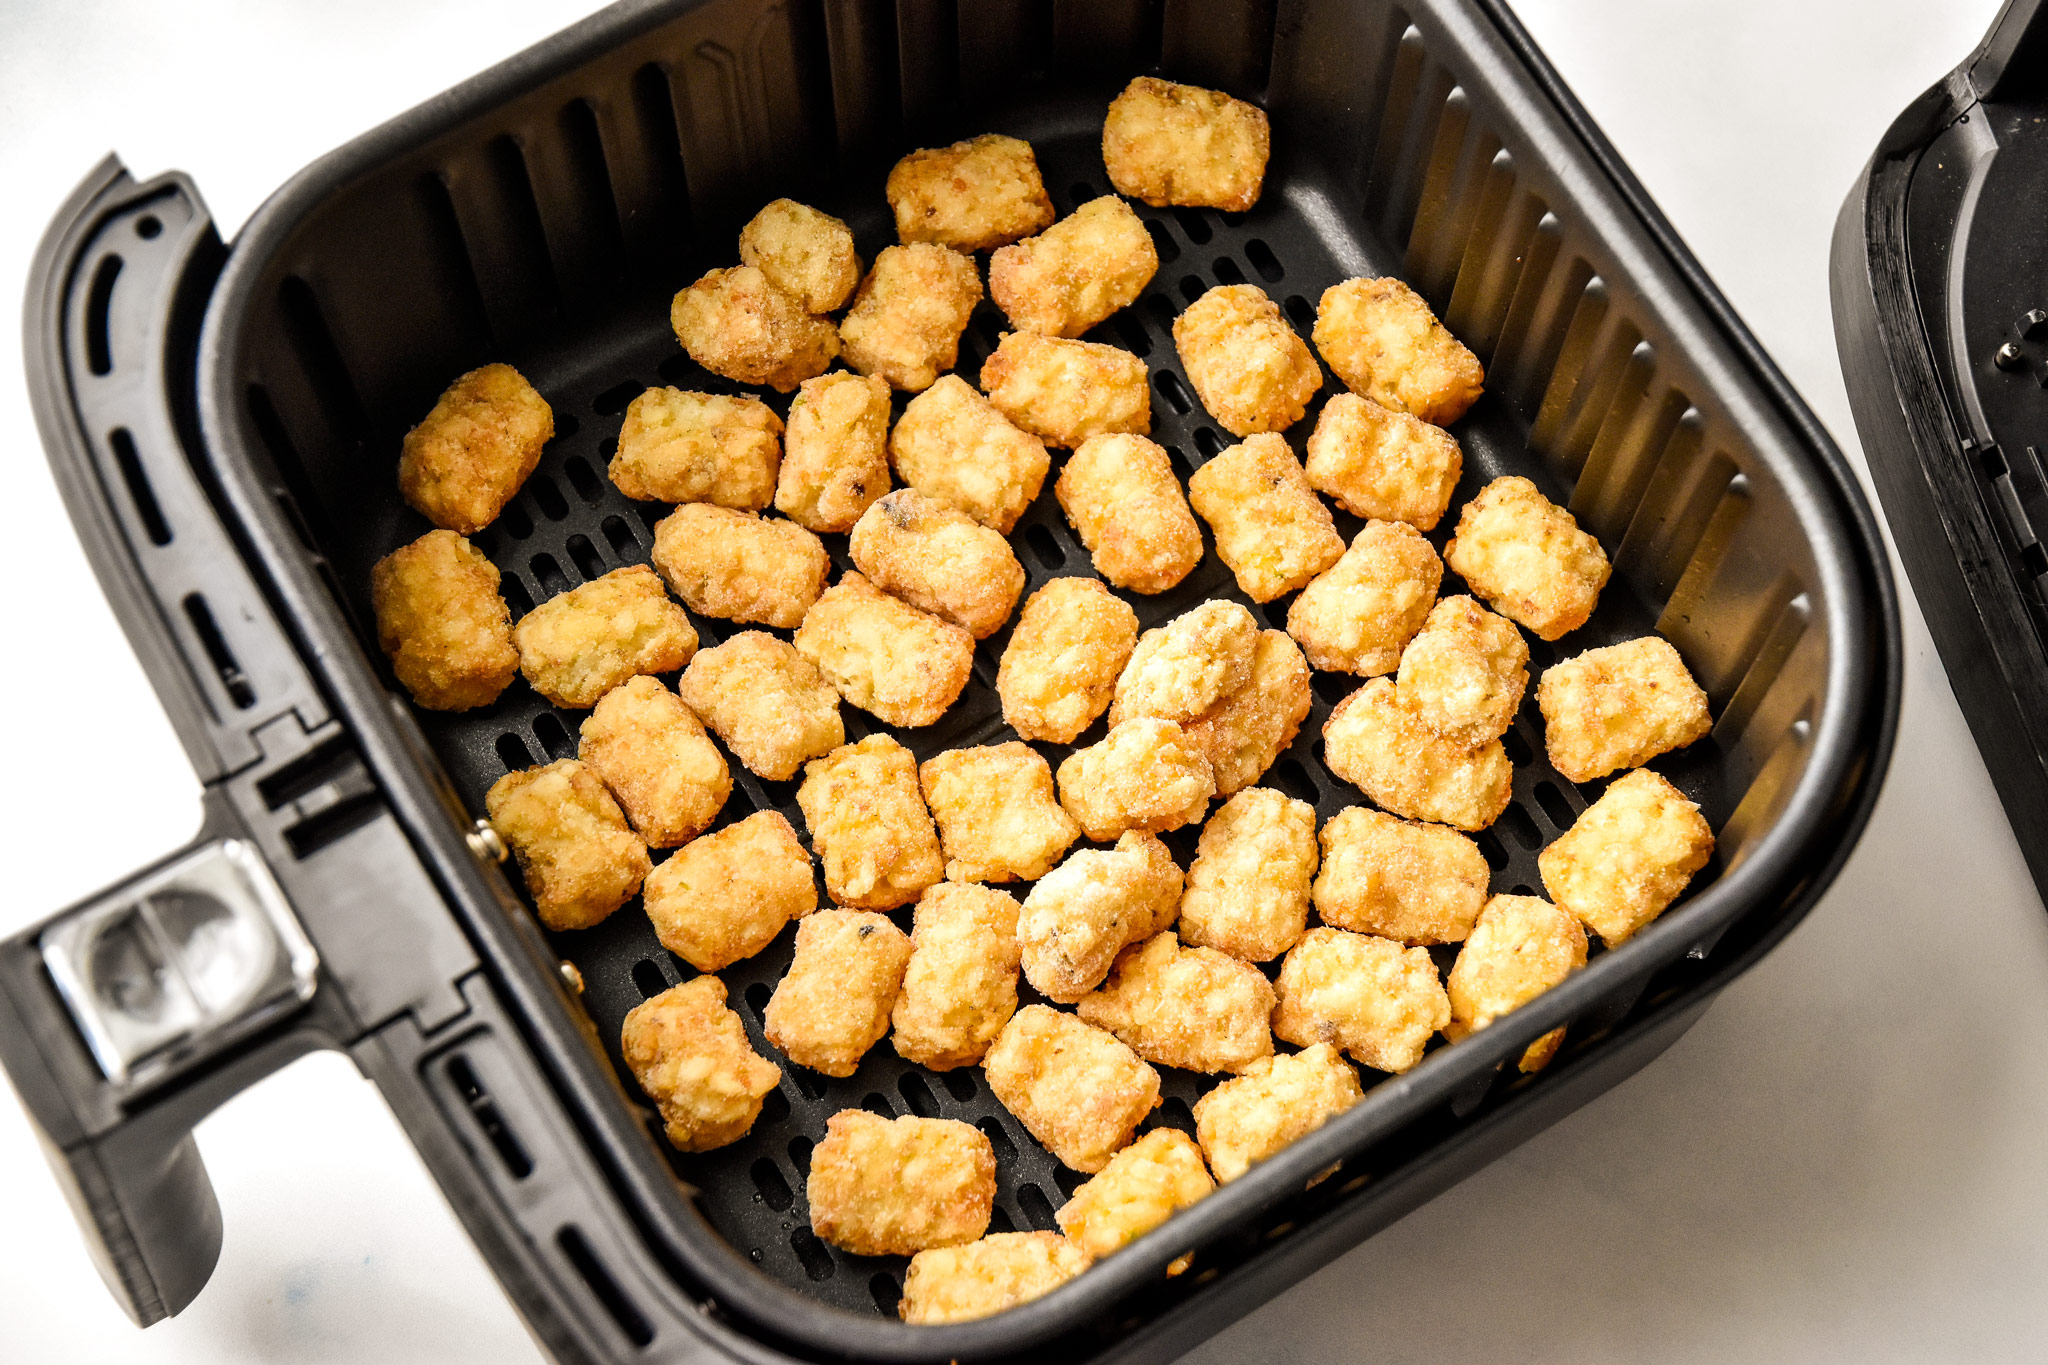 frozen tater tots in the air fryer